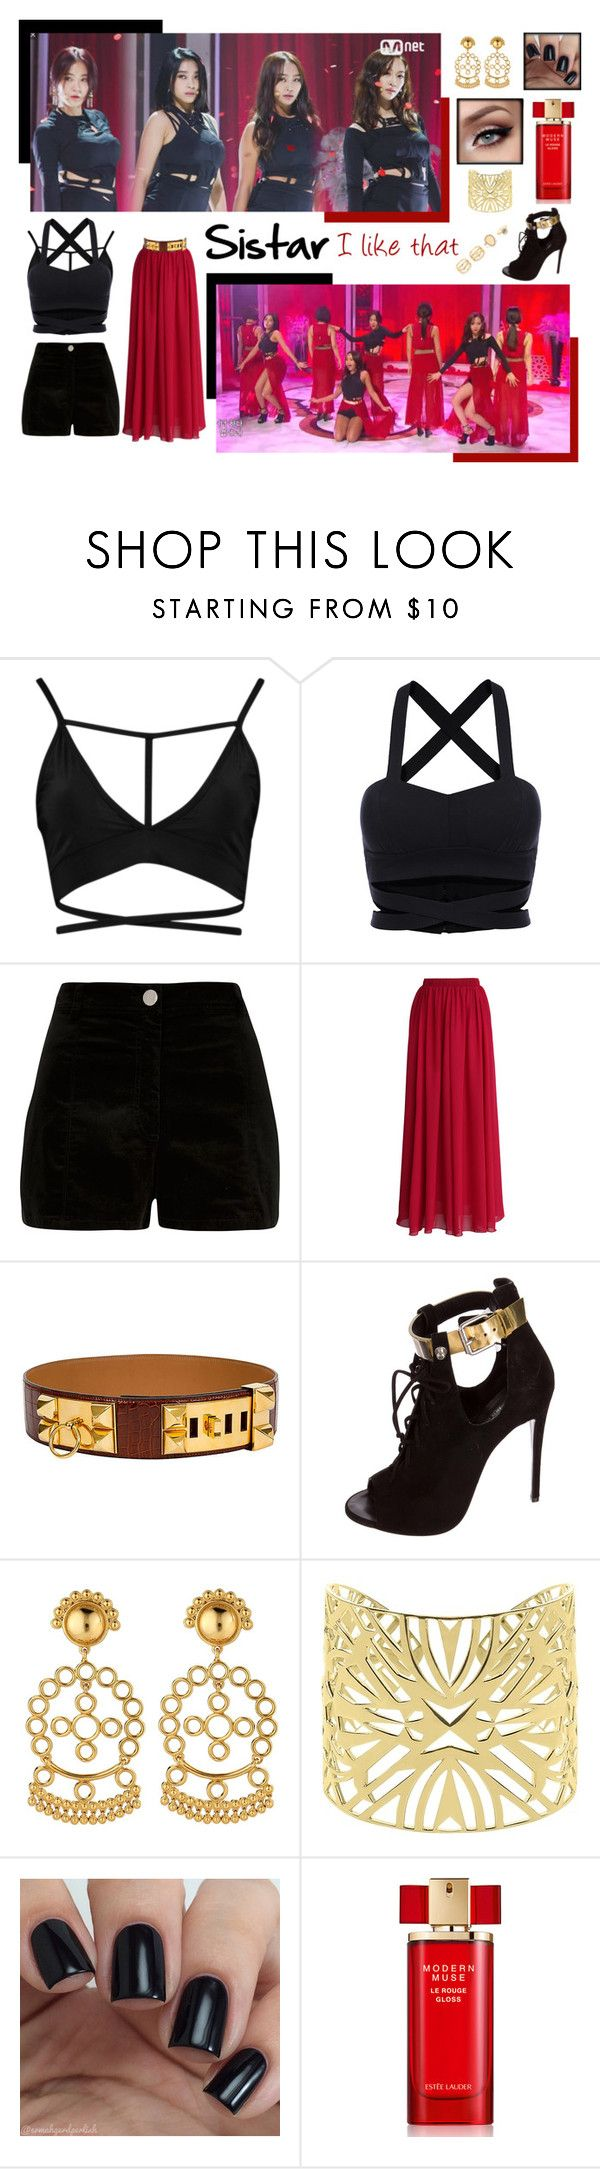 """Sistar ""I like that"" black & red ver."" by bambam7a1 ❤ liked on Polyvore featuring River Island, Chicwish, Giuseppe Zanotti, Asha by ADM, Vélizance, Estée Lauder and LULUS"